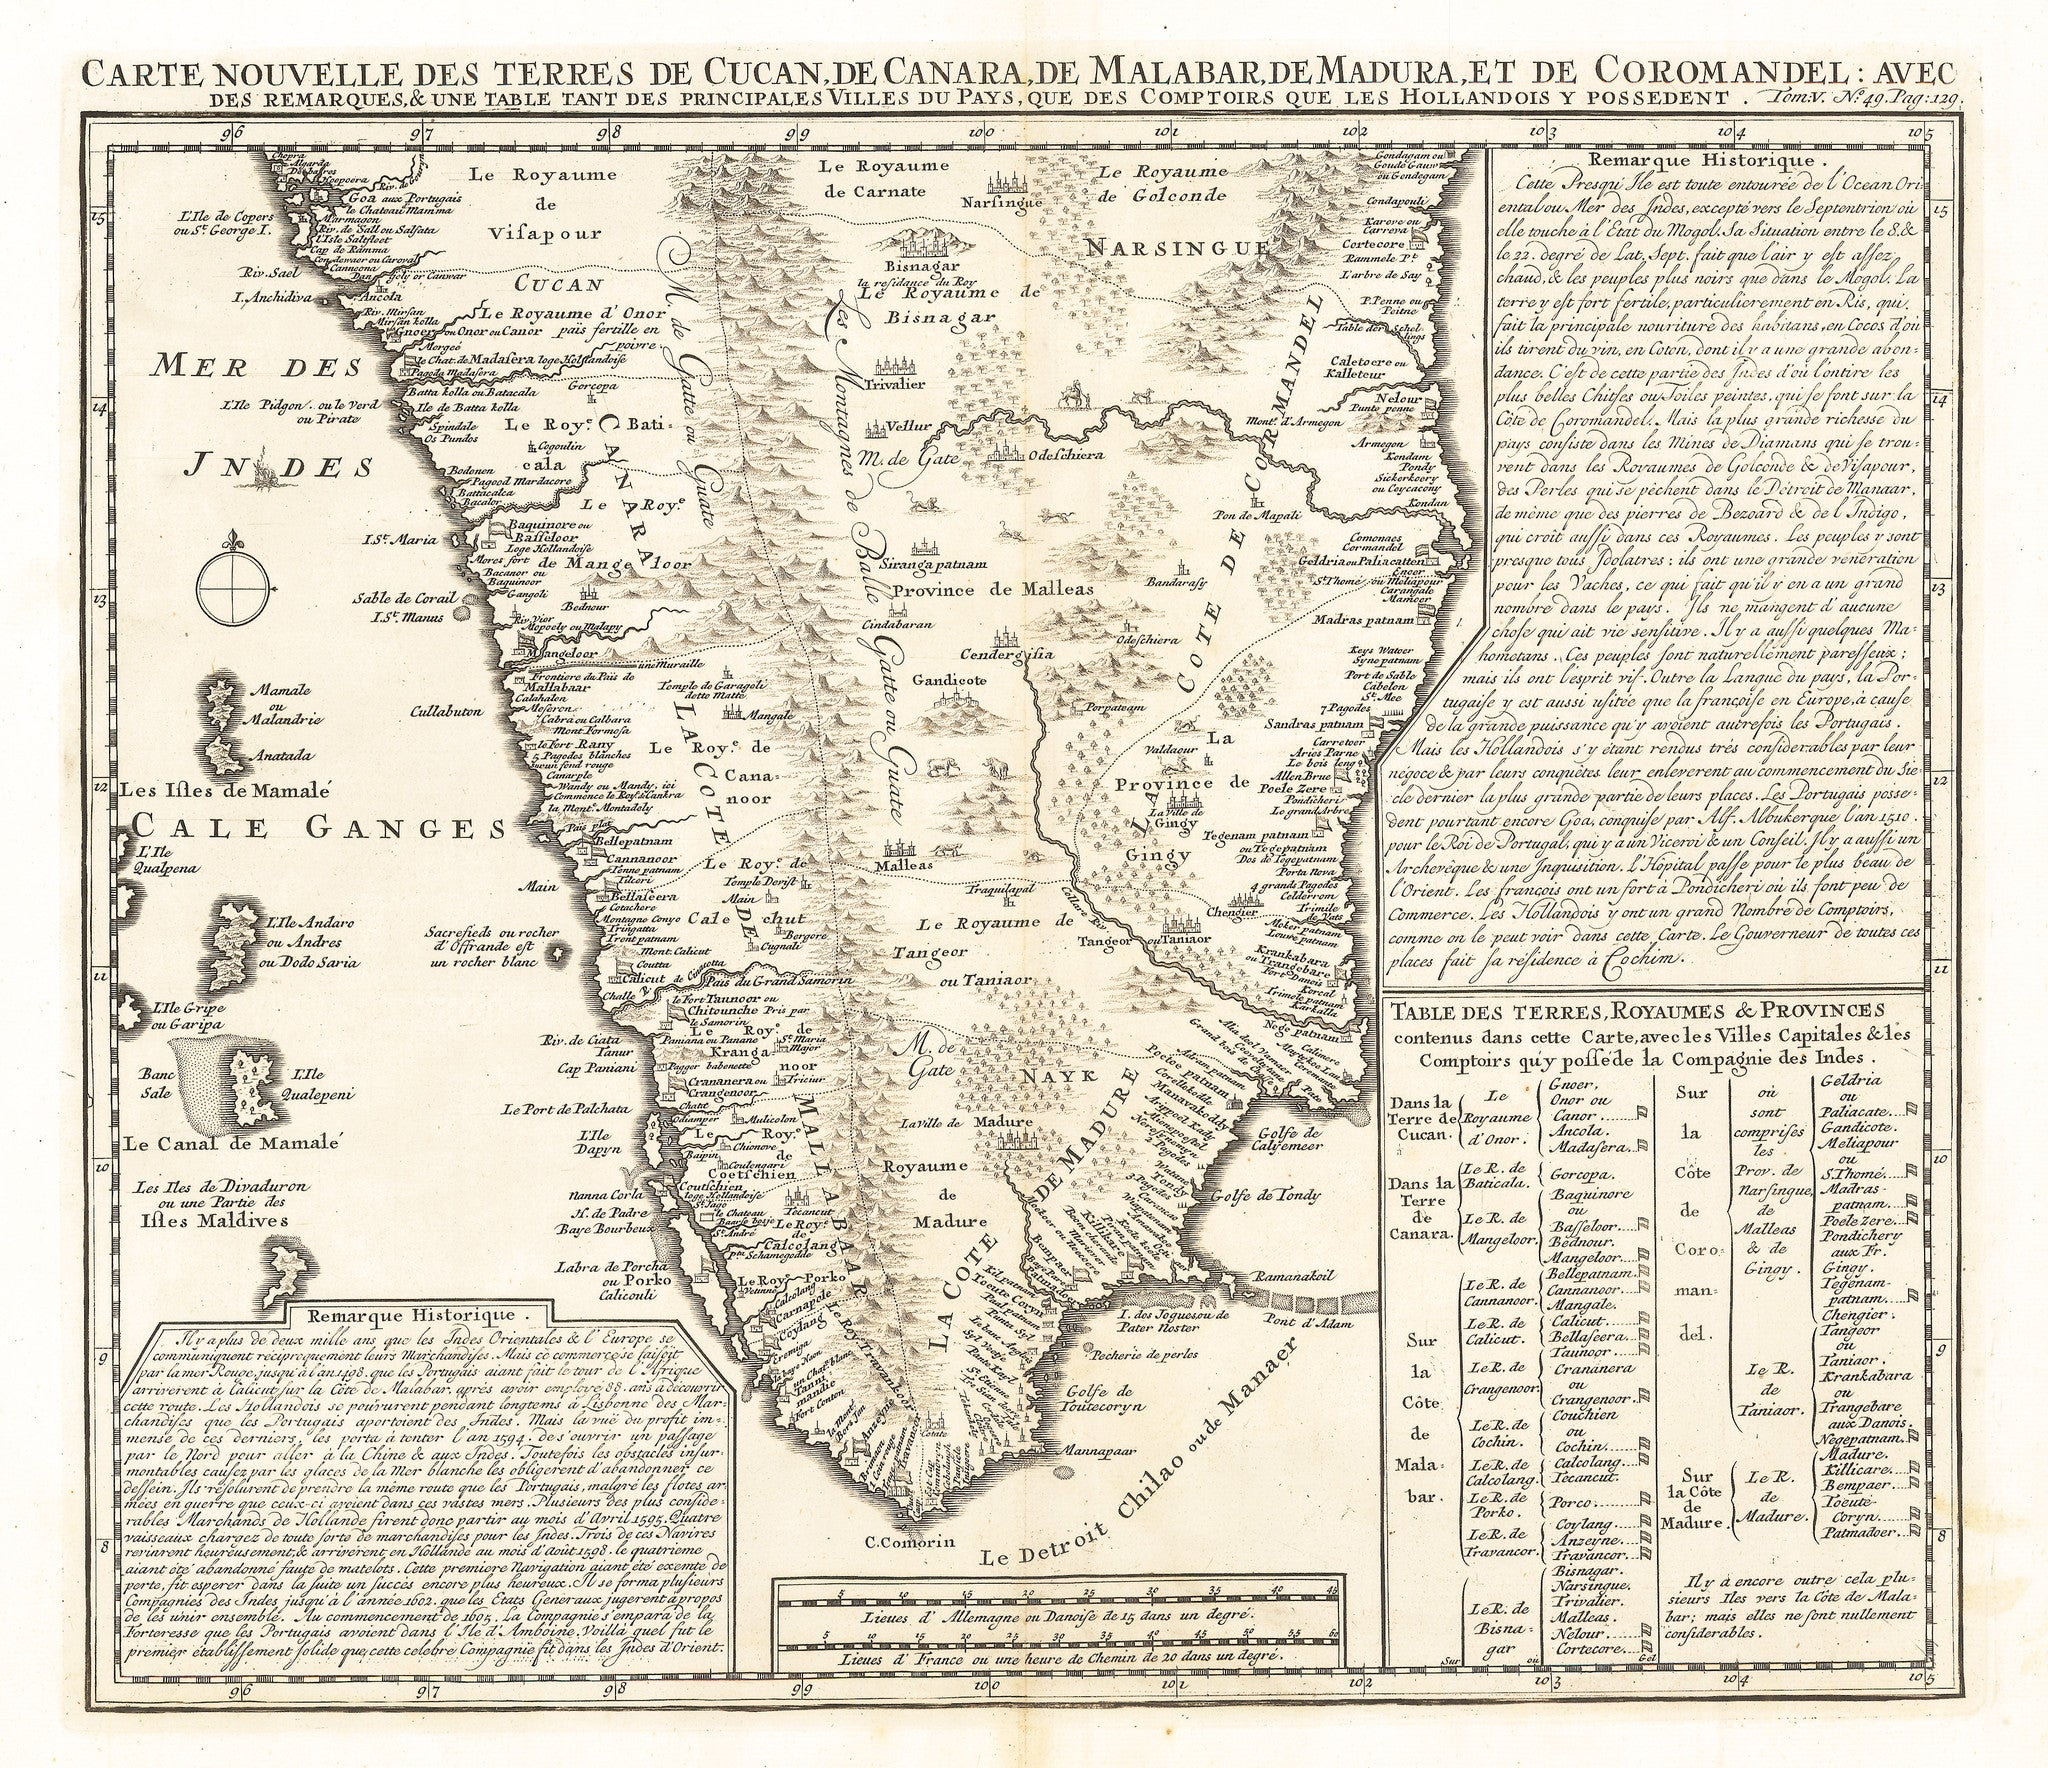 Authentic Antique map of India: Carte Nouvelle des Terres de Cucan, de Canara, de Malabar, de Madura, et de Coromandel ...  By: Henri Chatelain  Date: 1719 (published) Amsterdam